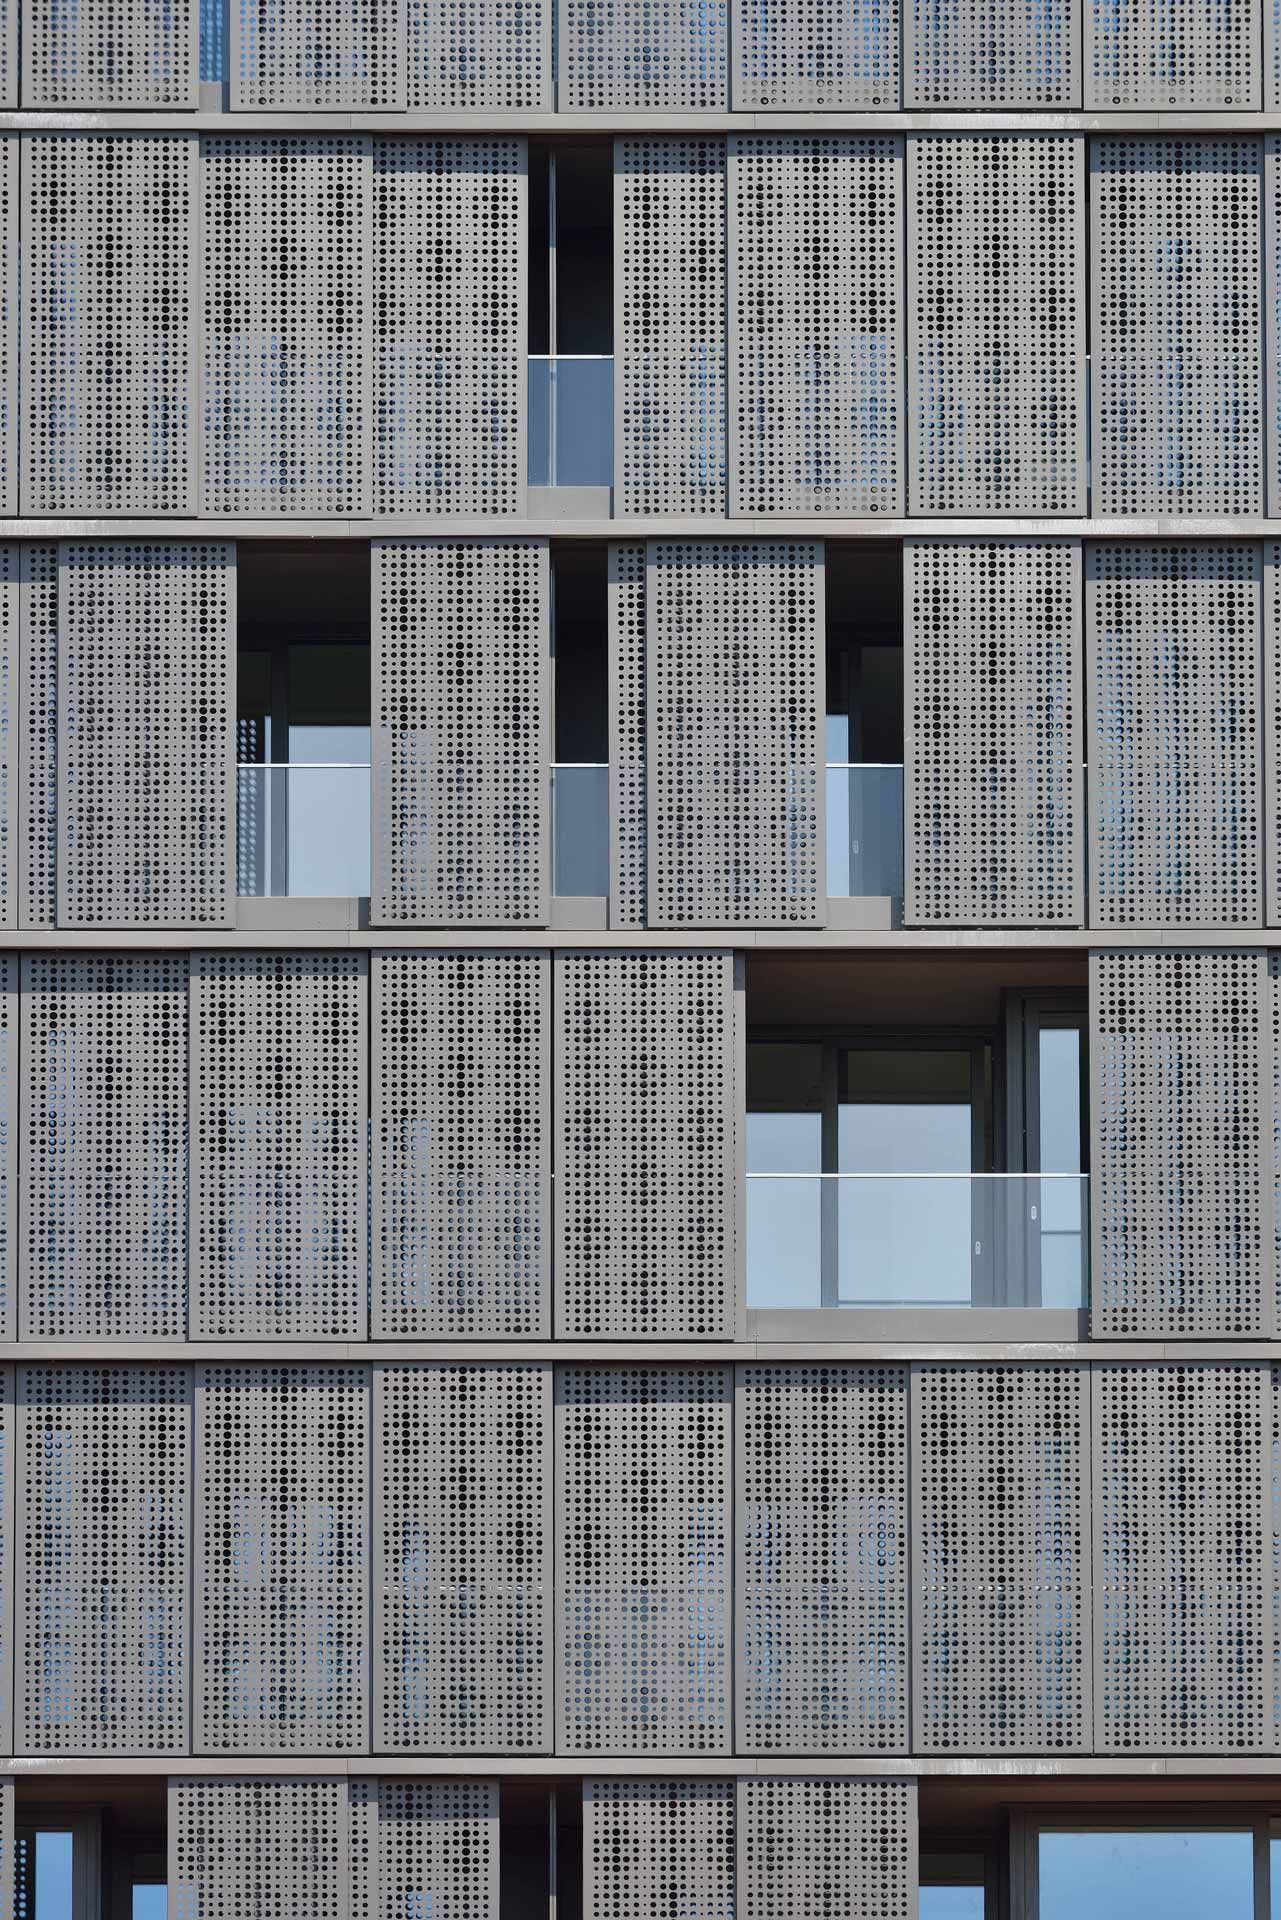 The sliding perforated aluminium panels cladding the for Window design normal